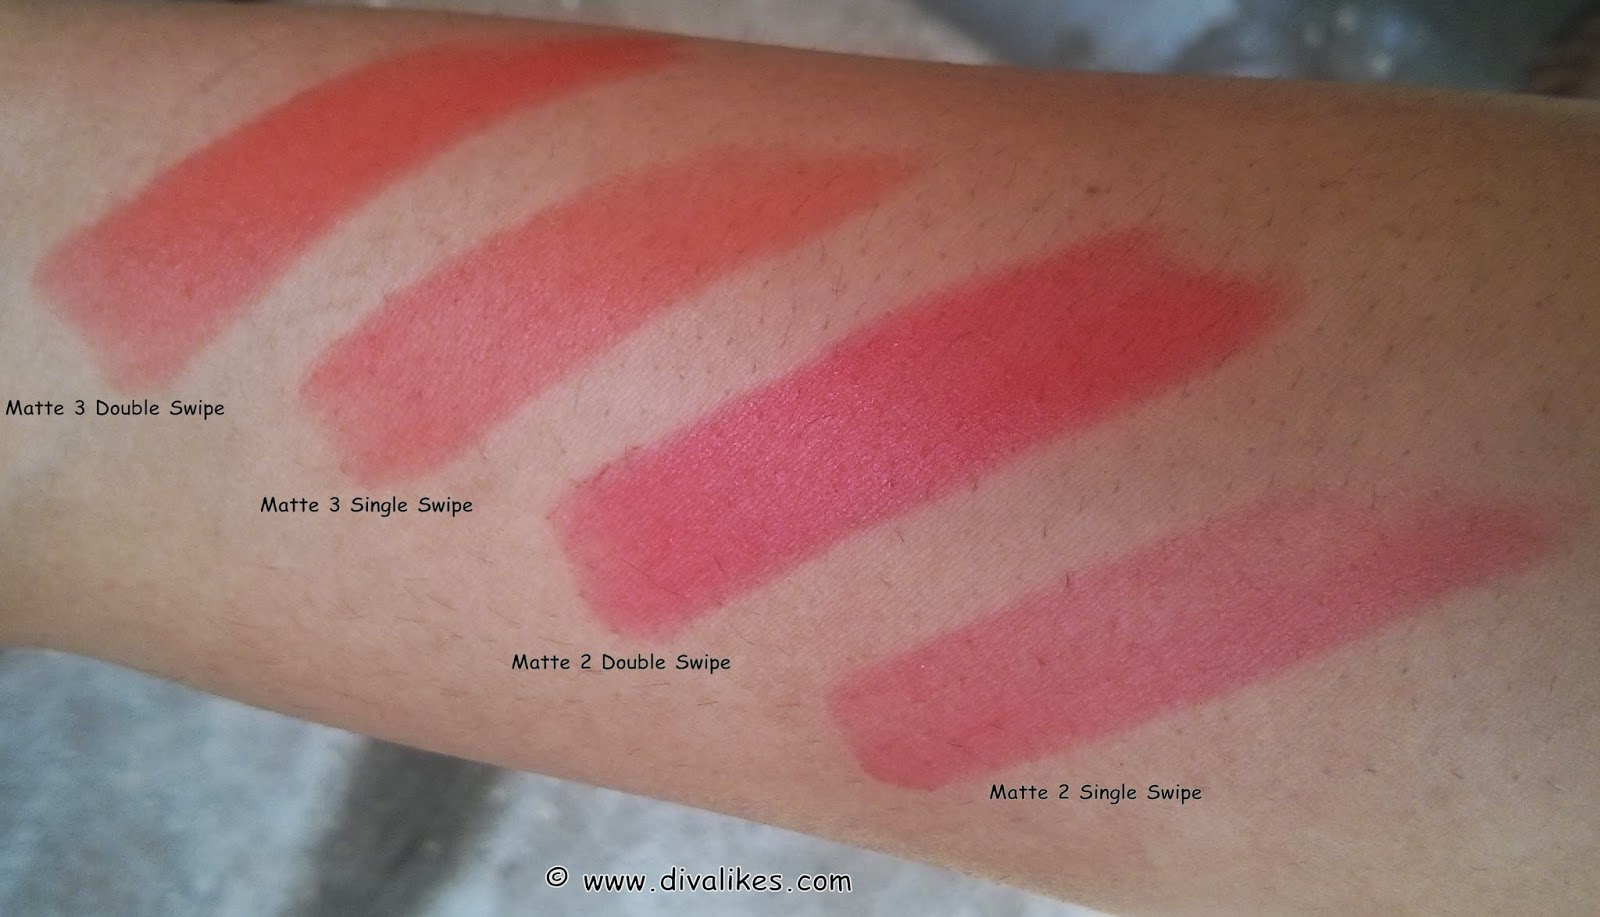 Maybelline Color Sensational Bold Matte Lipstick Mat 2 3 Lipstik Review Swatch Diva Likes